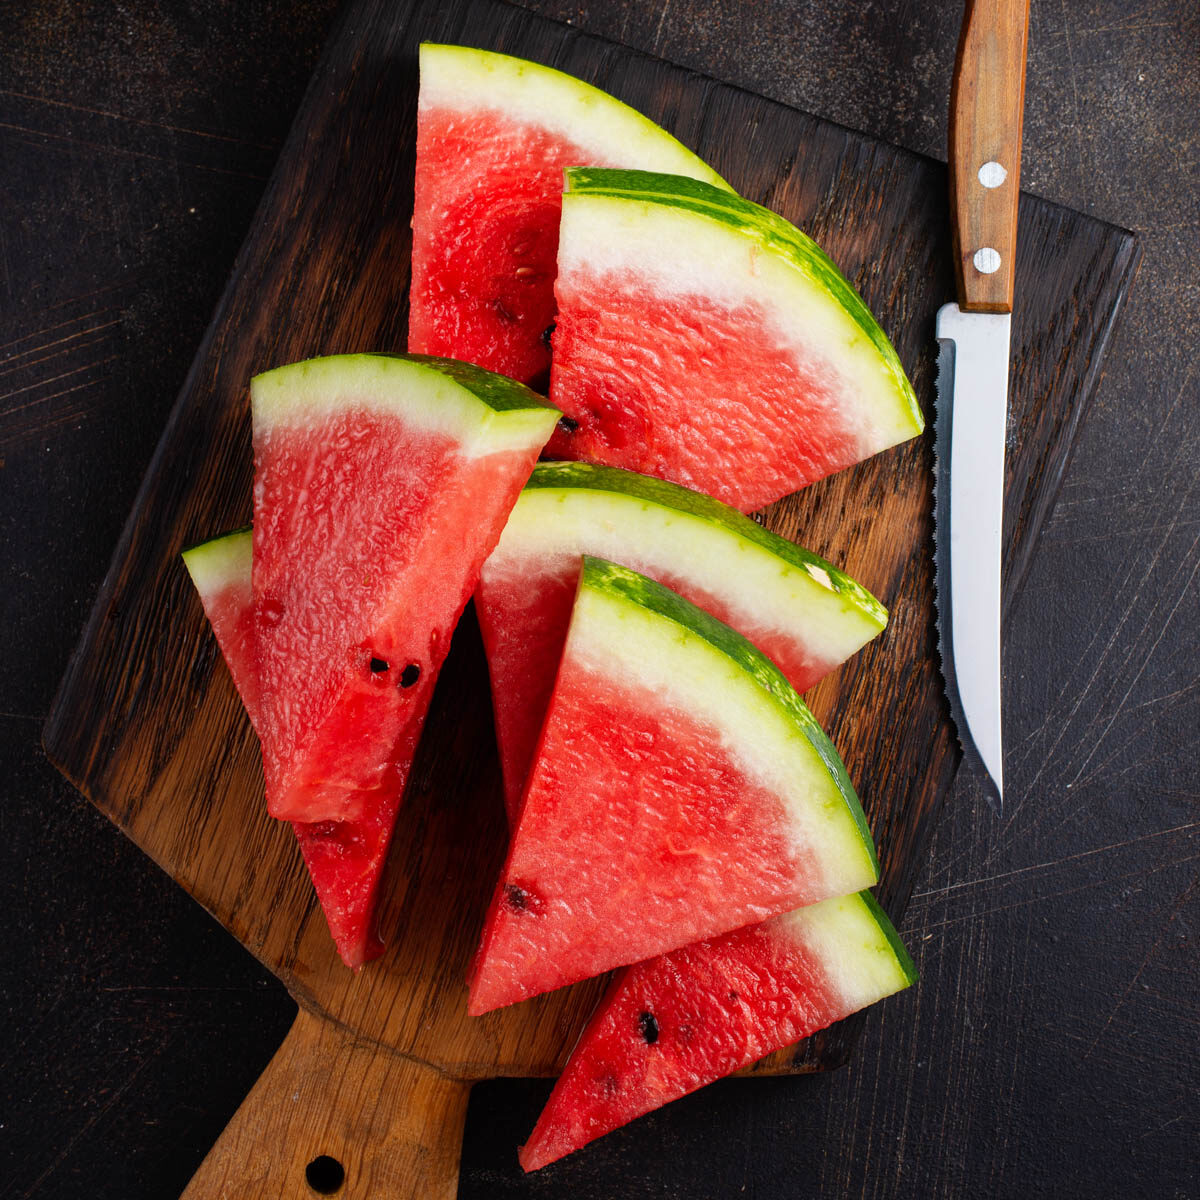 Watermelon sliced into triangles on a cutting board with a knife laying on the board.